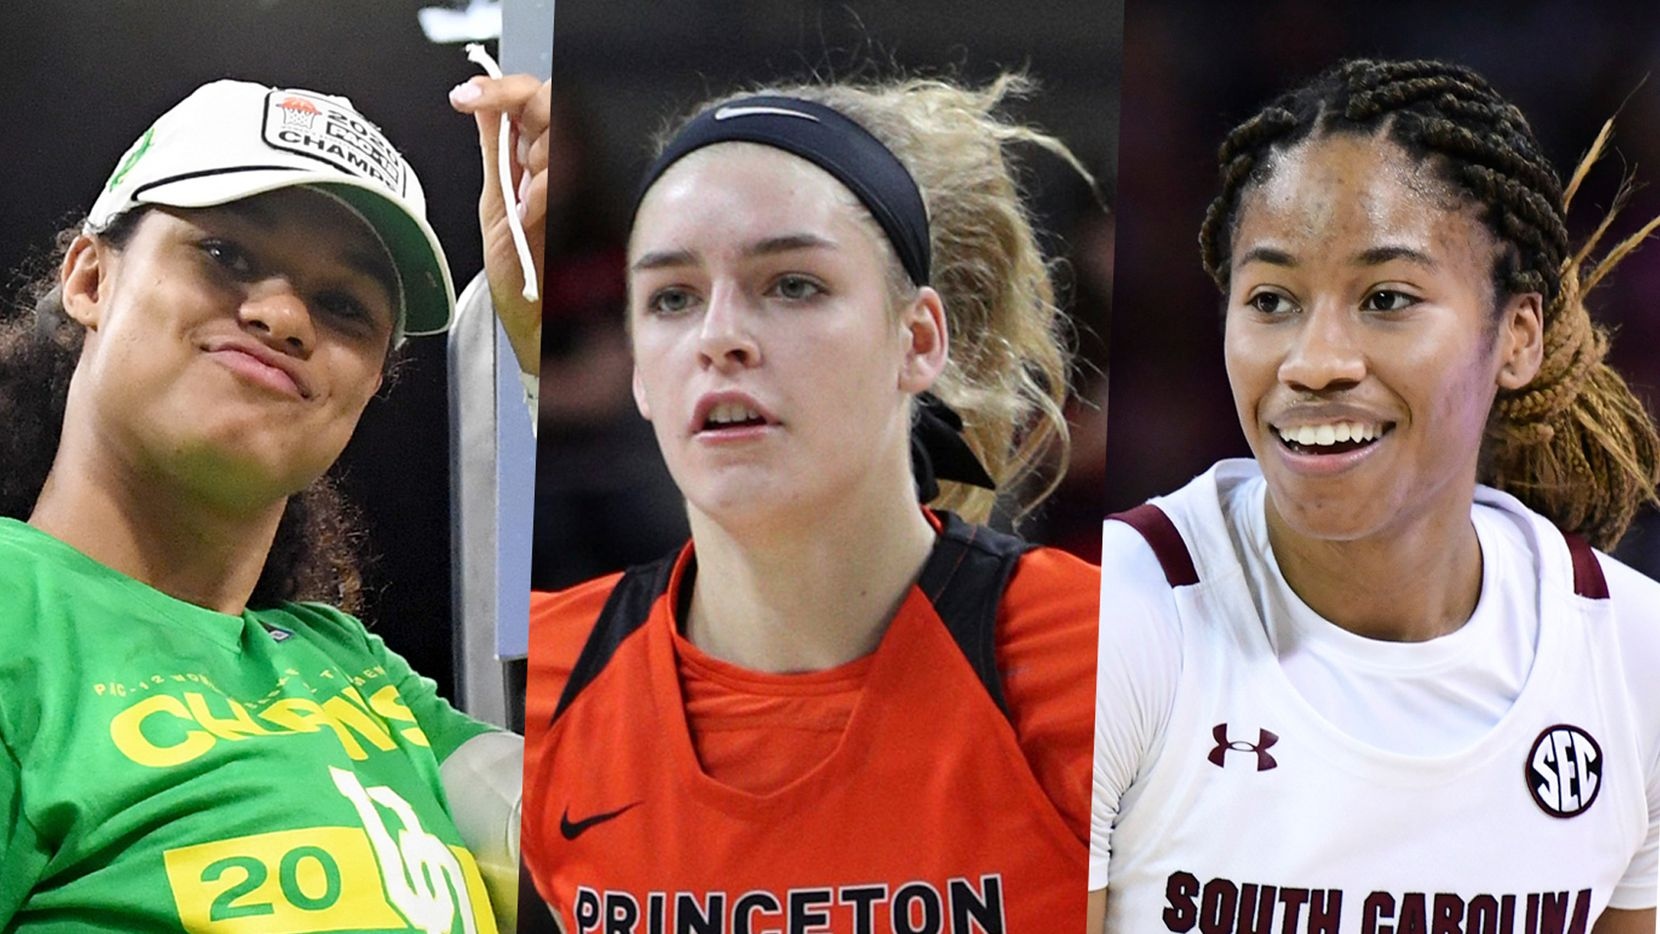 The Dallas Wings had three first-round picks in the 2020 WNBA draft. From left to right: Oregon forward Satou Sabally, Princeton guard/forward Bella Alarie and South Carolina guard Tyasha Harris.